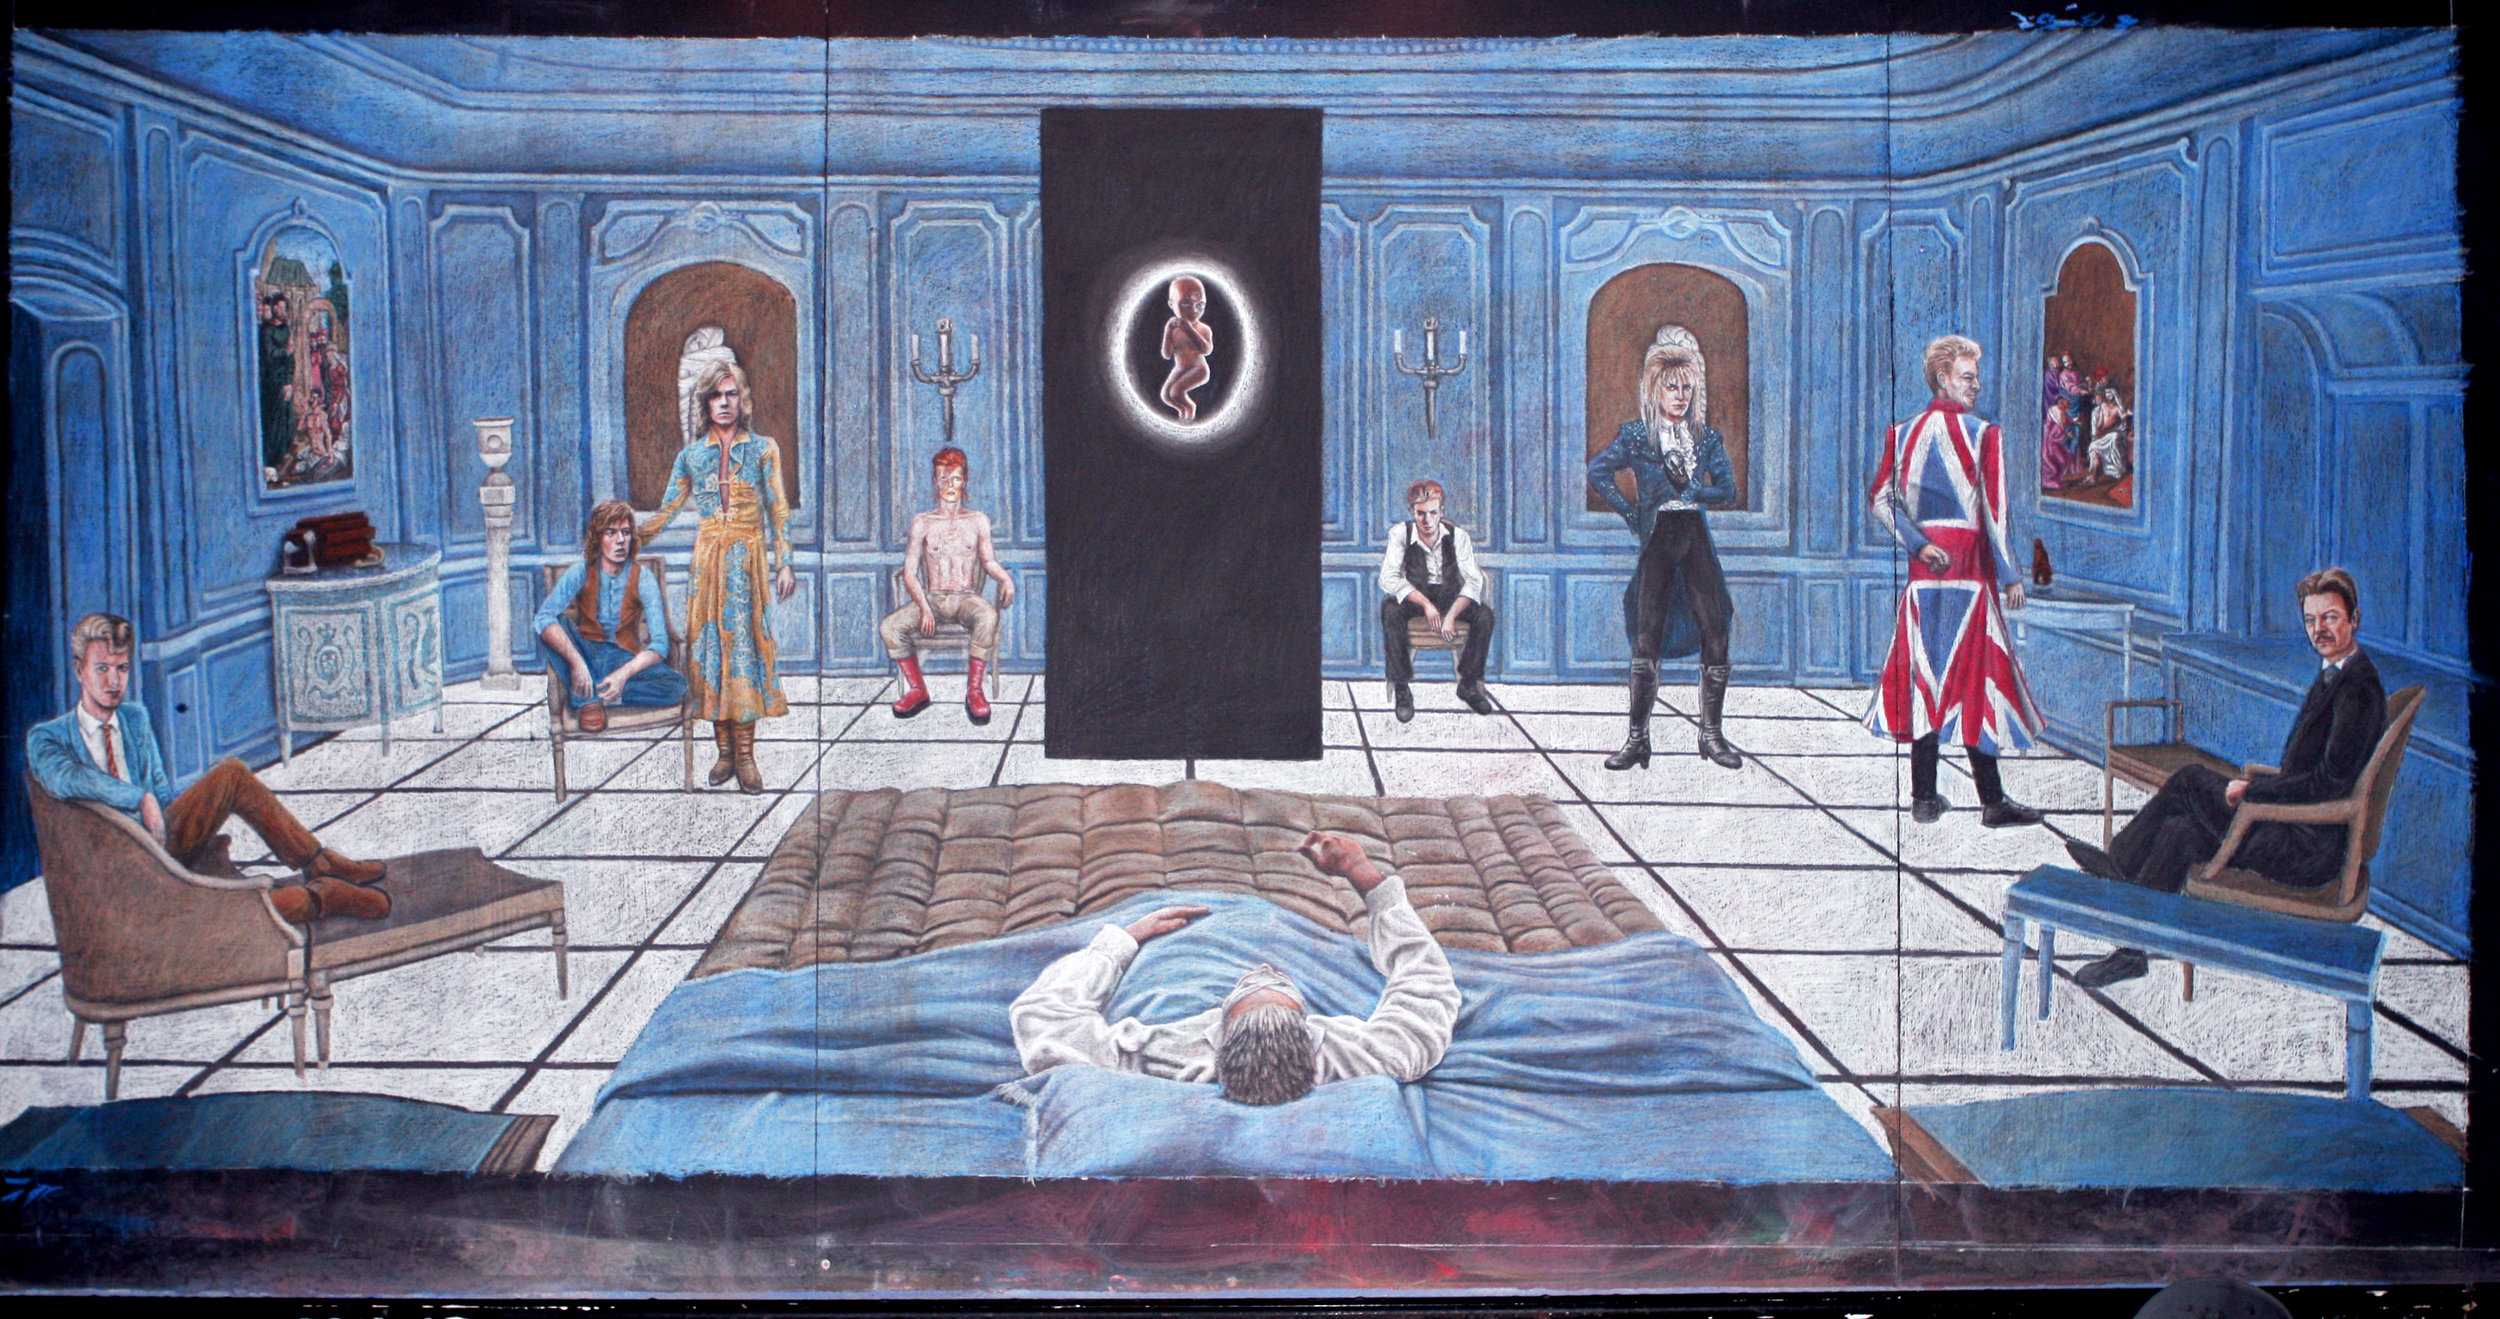 Bowie 2001 Mural